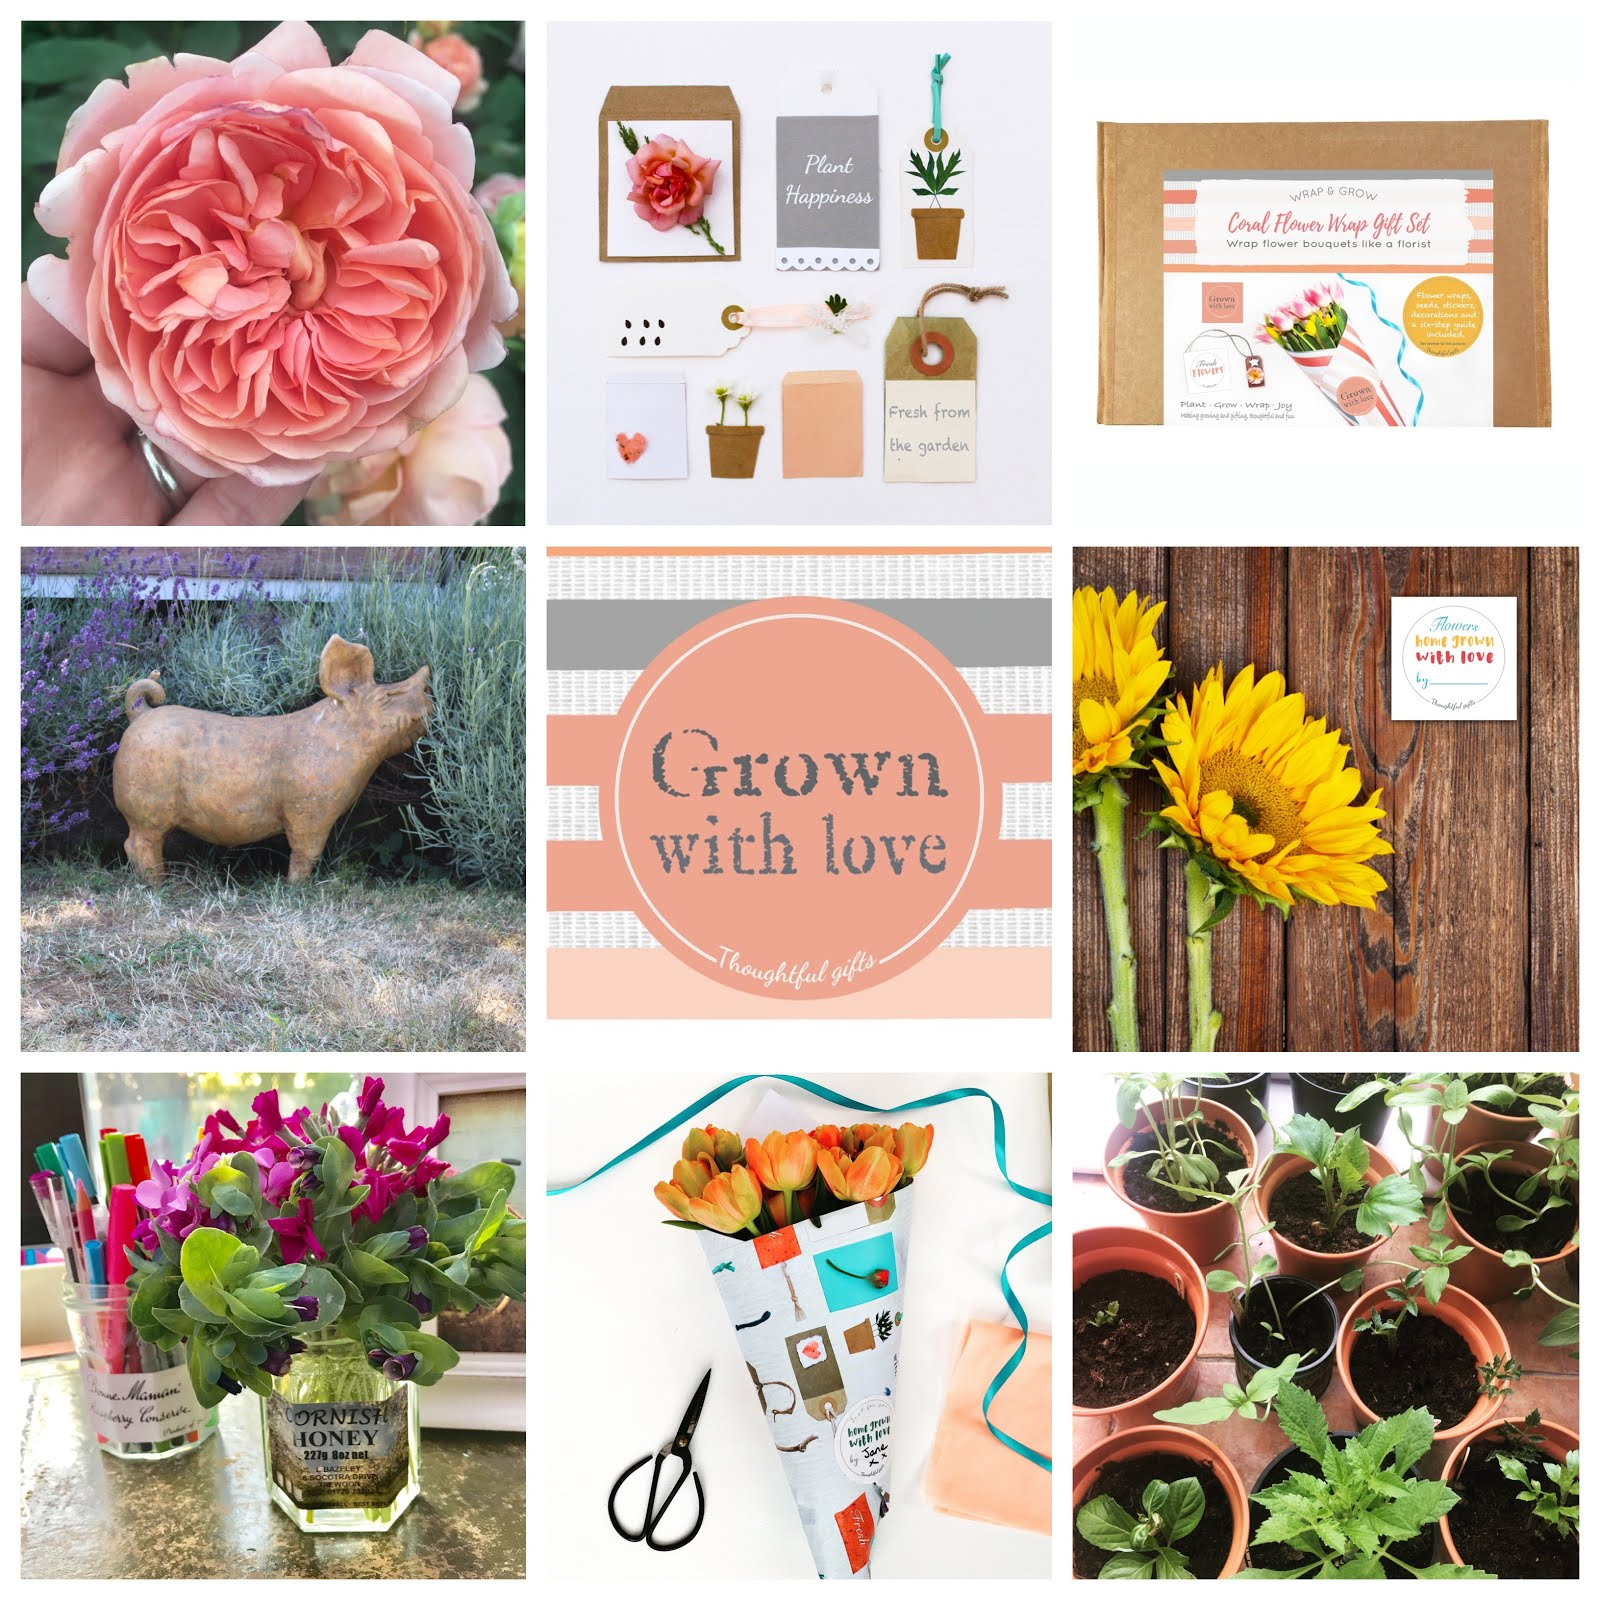 Be Inspired by Flowers - Join The Newsletter